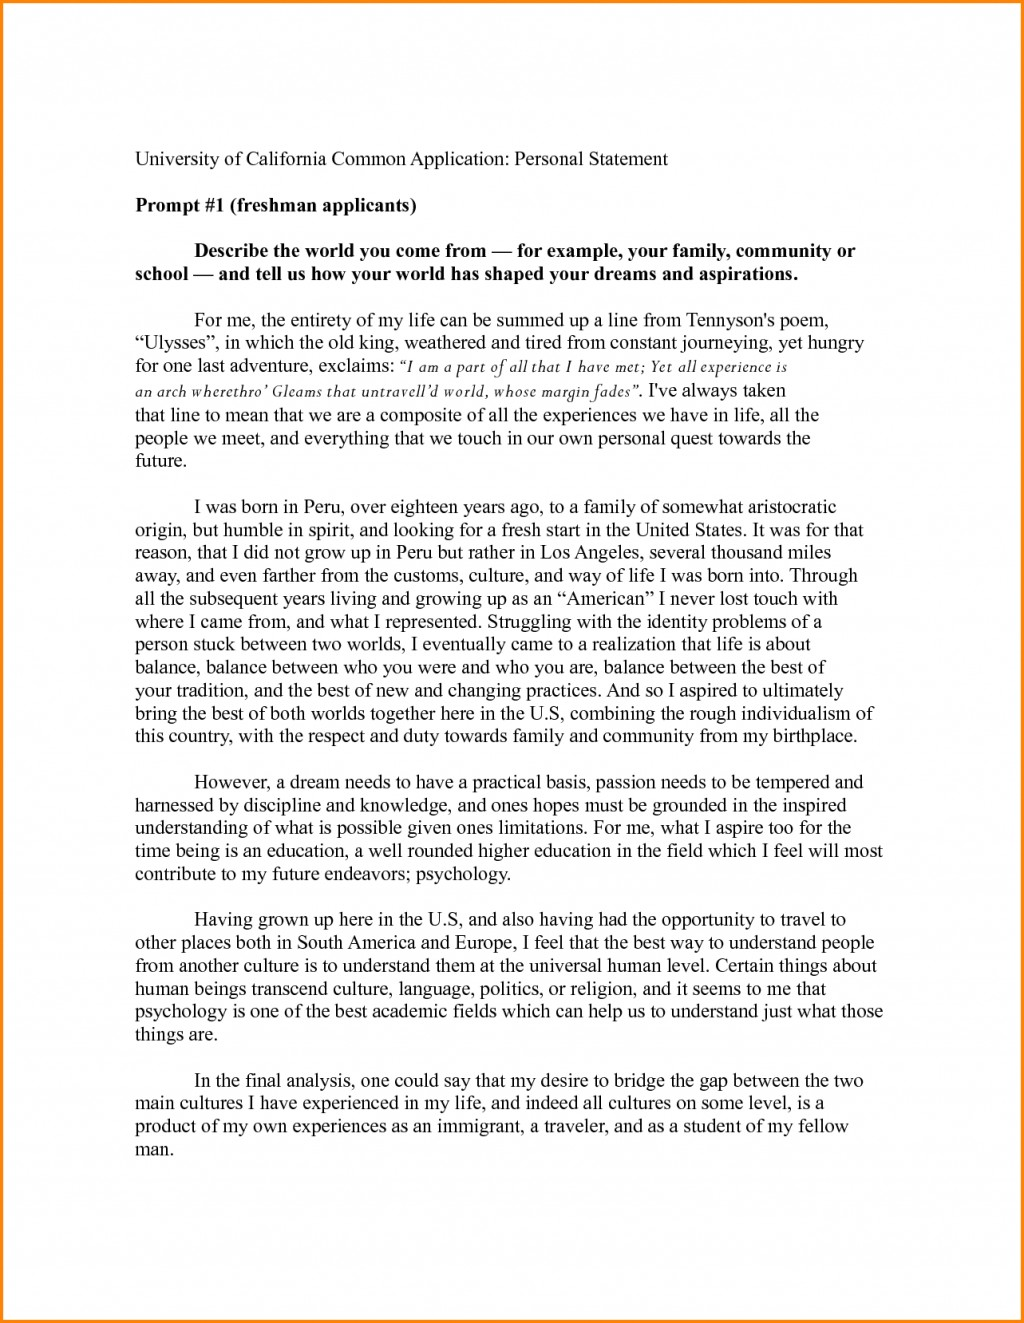 008 Brilliant Ideas Of College Entrance Essay Format Mon Application Personal Easy Prompts Texas Example Archaicawful Apply Topics Prompt C Topic Examples A Large